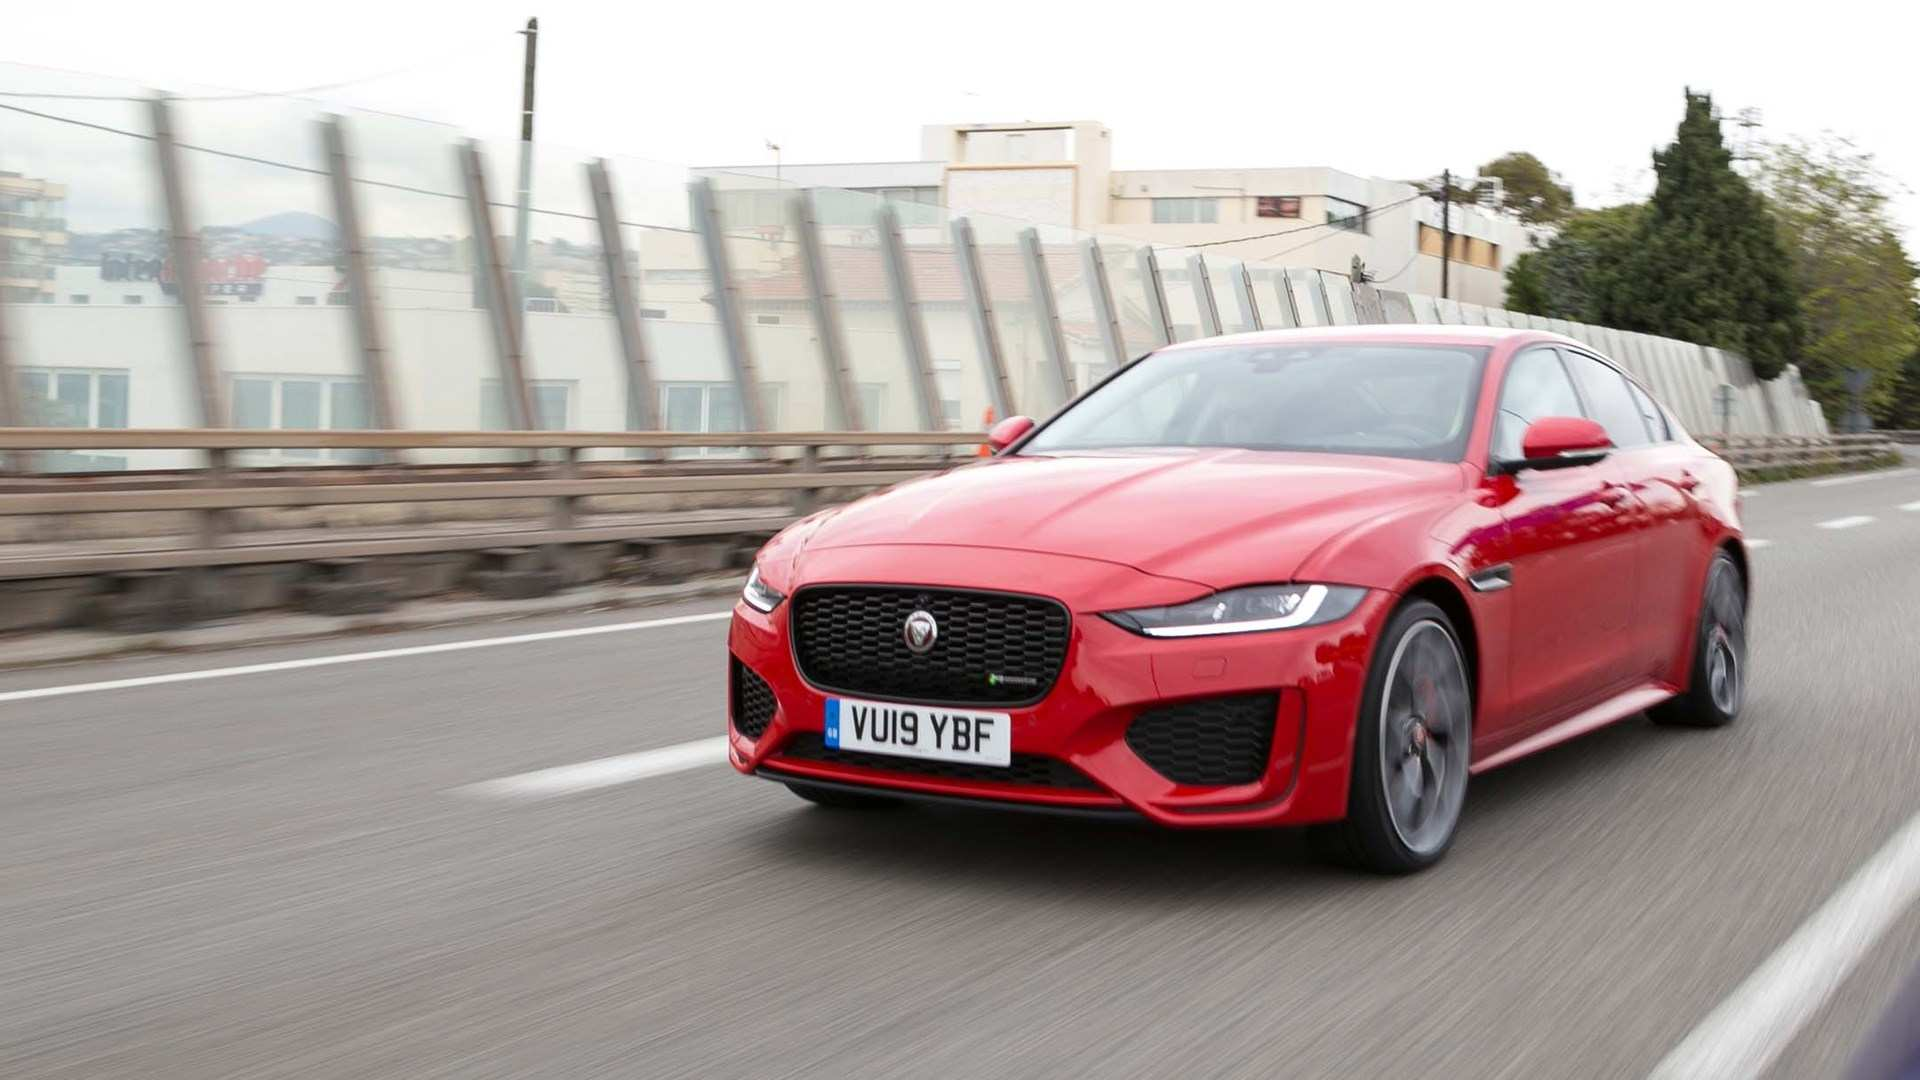 72 All New Jaguar Xe May 2020 New Concept by Jaguar Xe May 2020